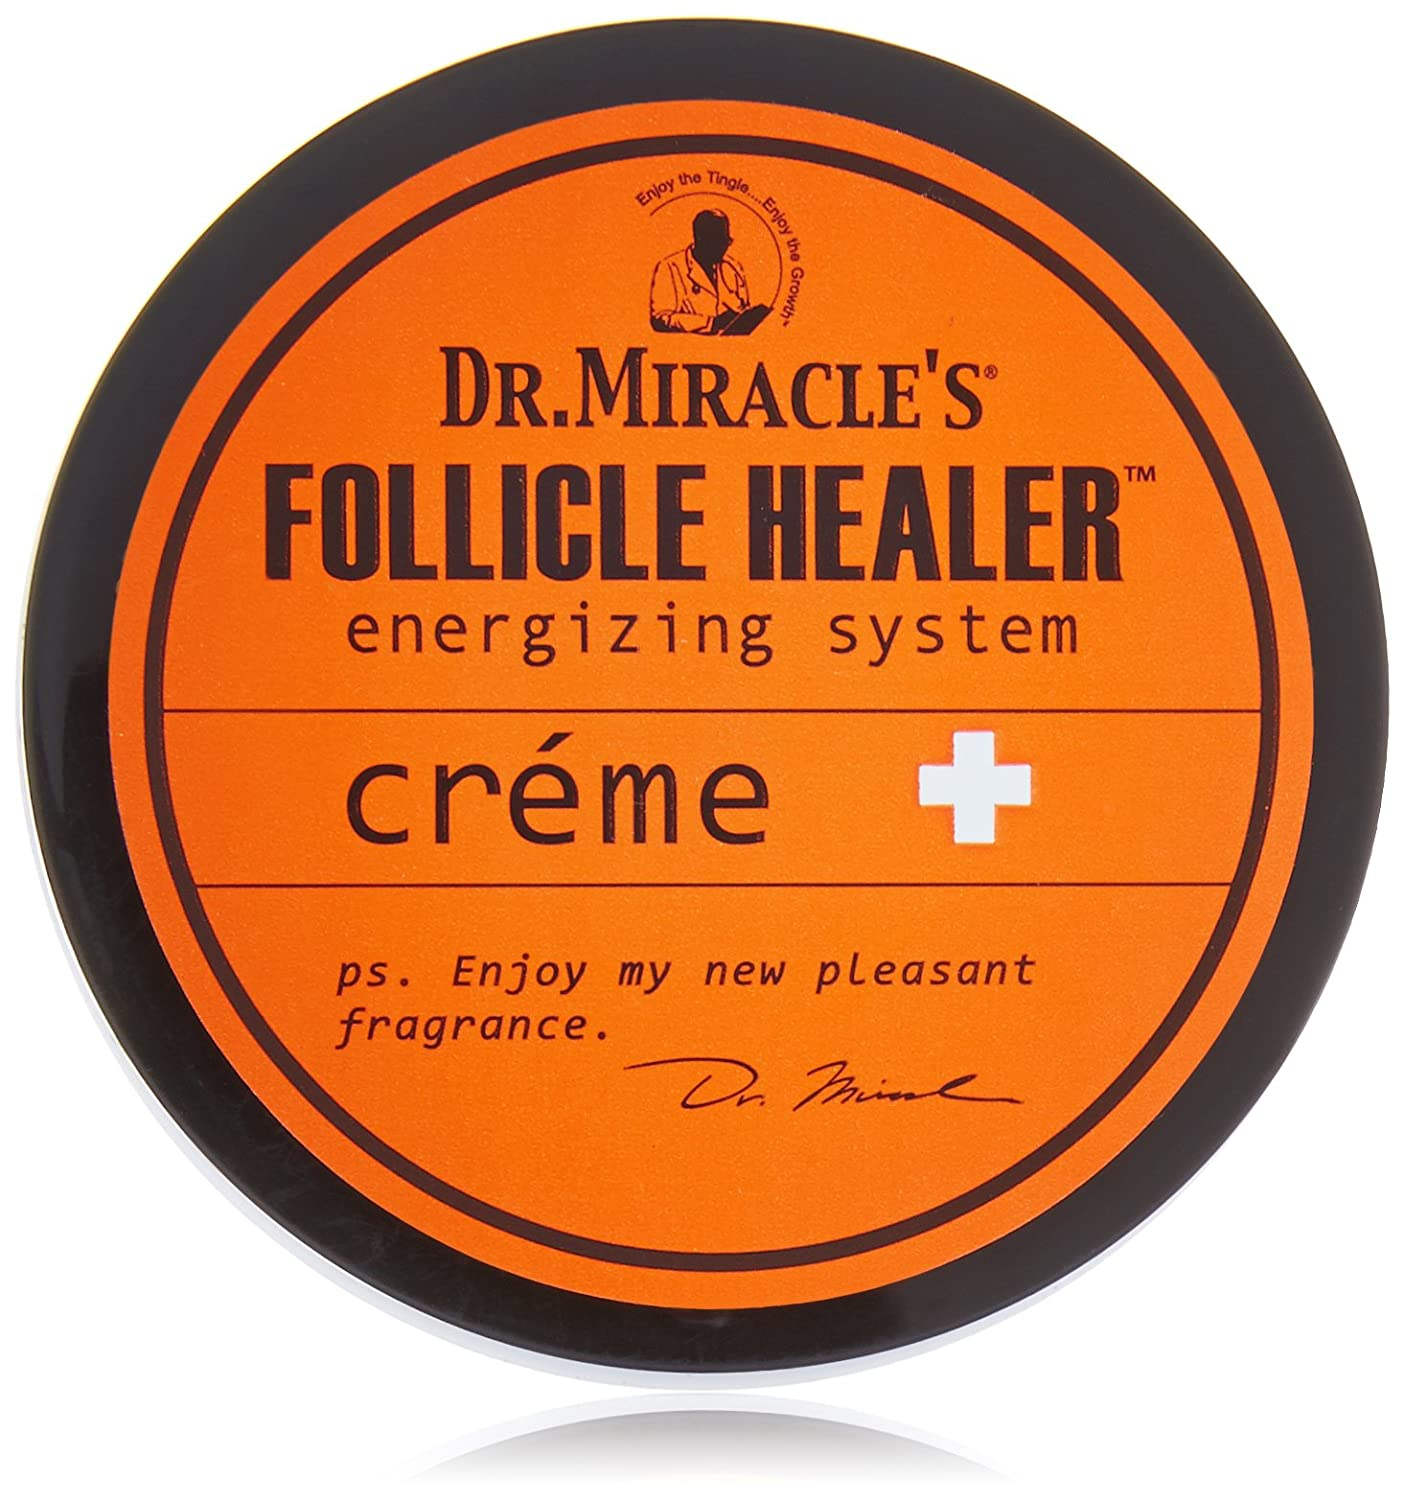 Dr. Miracle's Follicle Healer Creme, 2 Ounce Dr Miracle' s